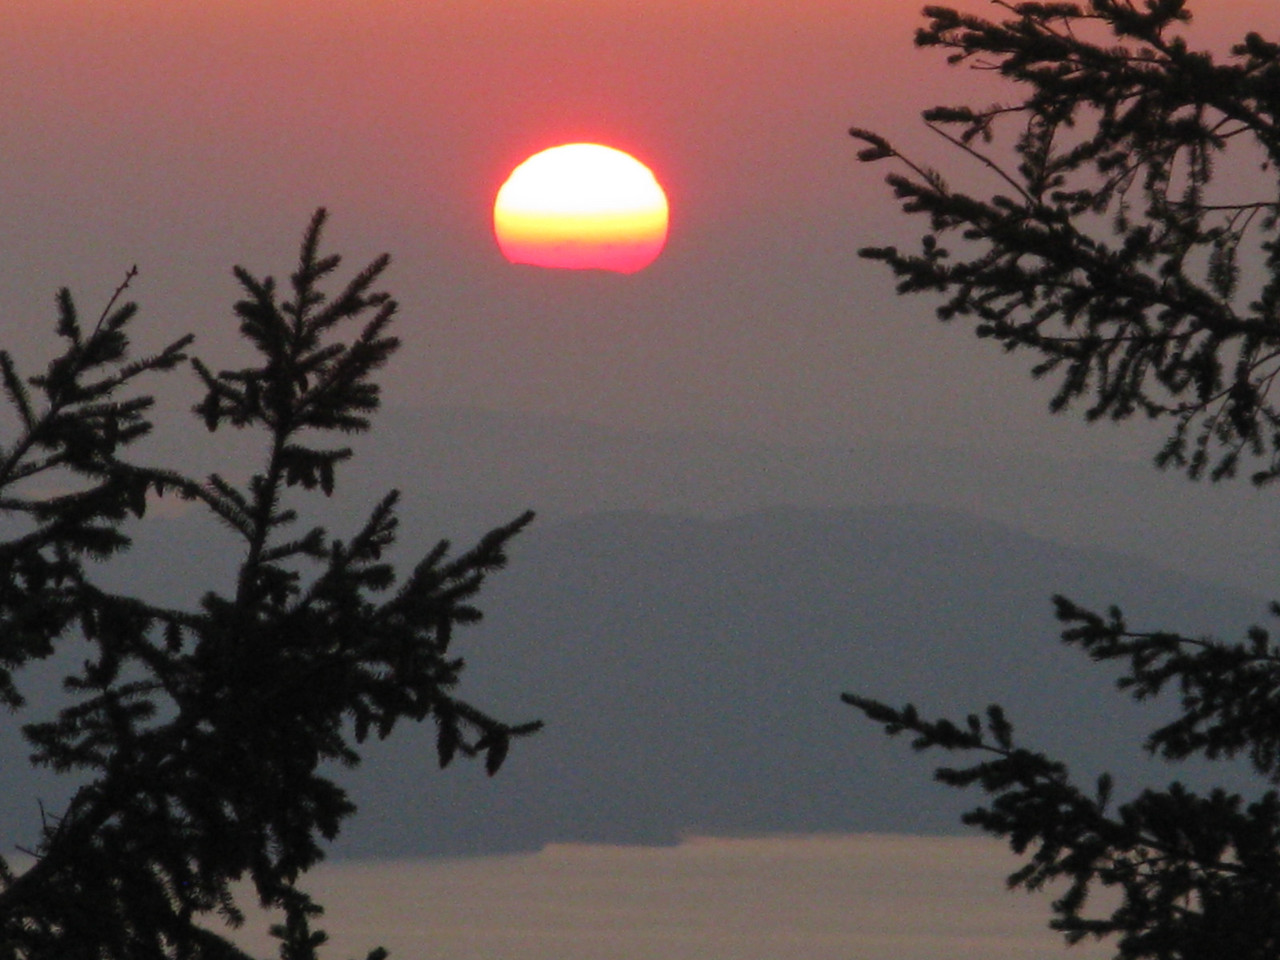 Sunset was spectacular from the watchtower on Mount Constitution on Orcas Island, looking west-northwest over the Pender Islands in Canada.